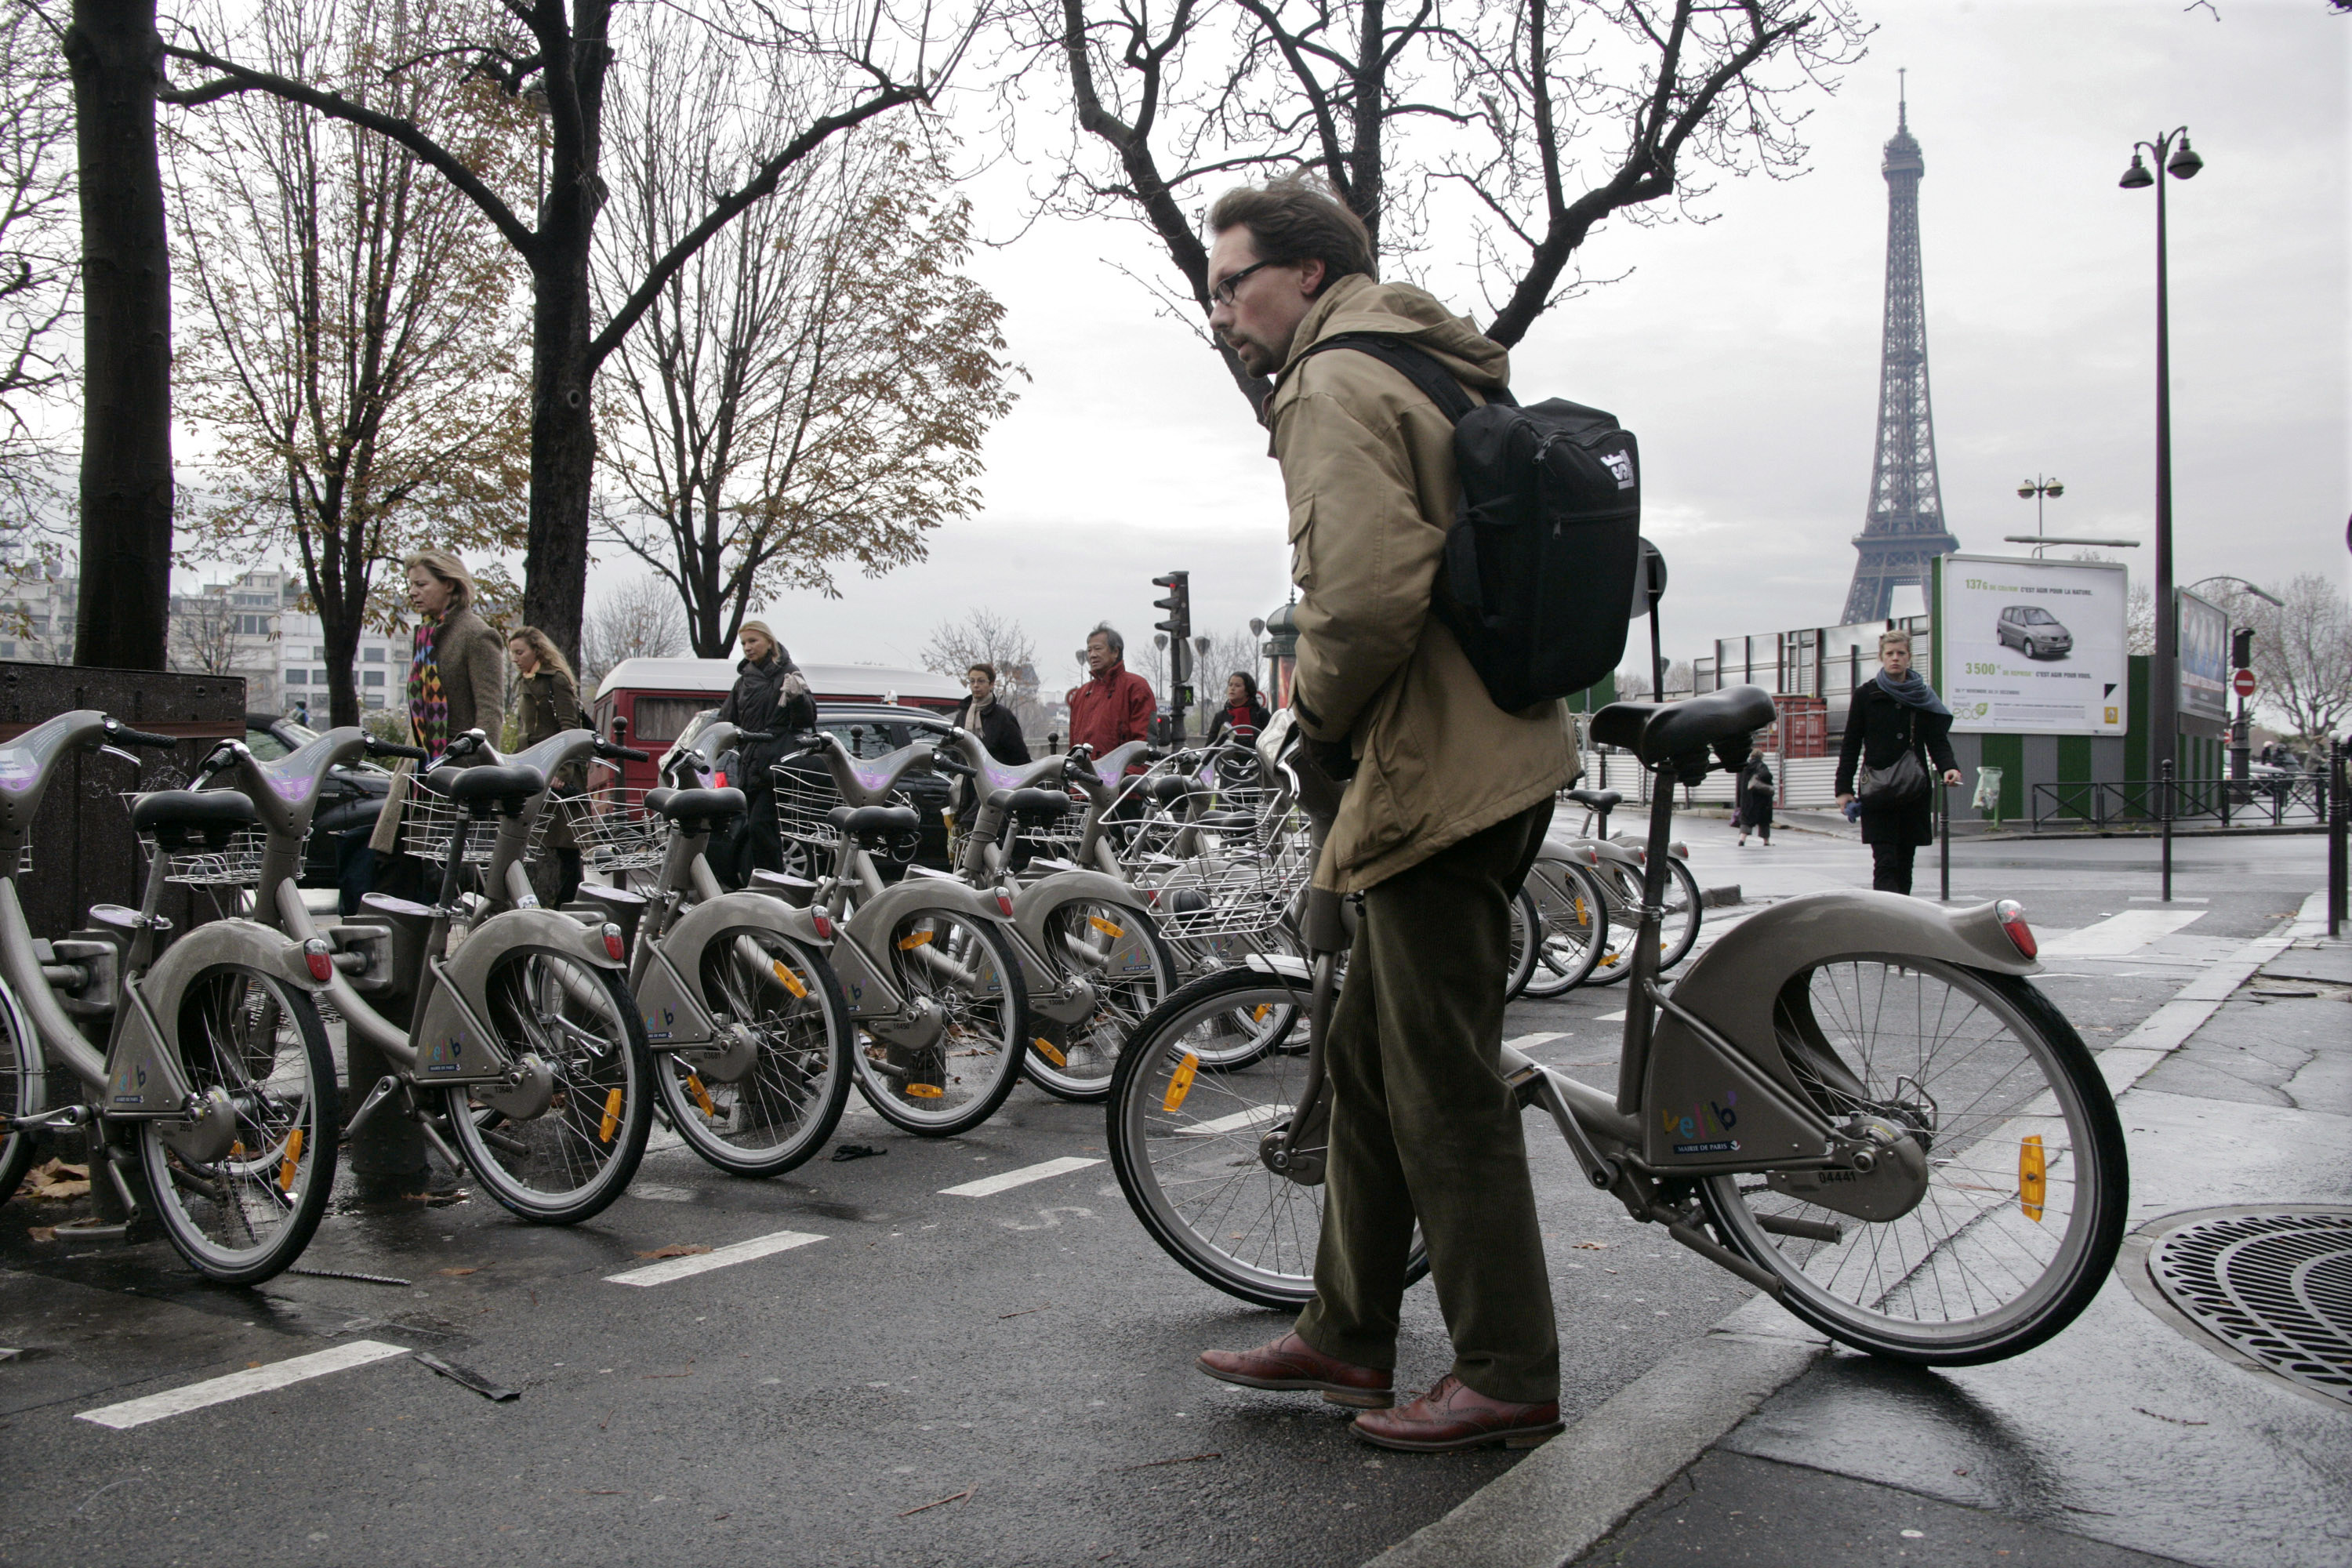 A Paris commuter checks a Velib self-service public bicycle into a distribution point during a continuing transport strike against pension reforms, November 20, 2007. Nationwide protests over issues ranging from pension reform to the cost of living disrupted schools, trains, postal services and airports. They are the biggest threat to Sarkozy's planned reforms since he was elected president in May.   REUTERS/Mal Langsdon (FRANCE) - GM1DWQFWUDAA